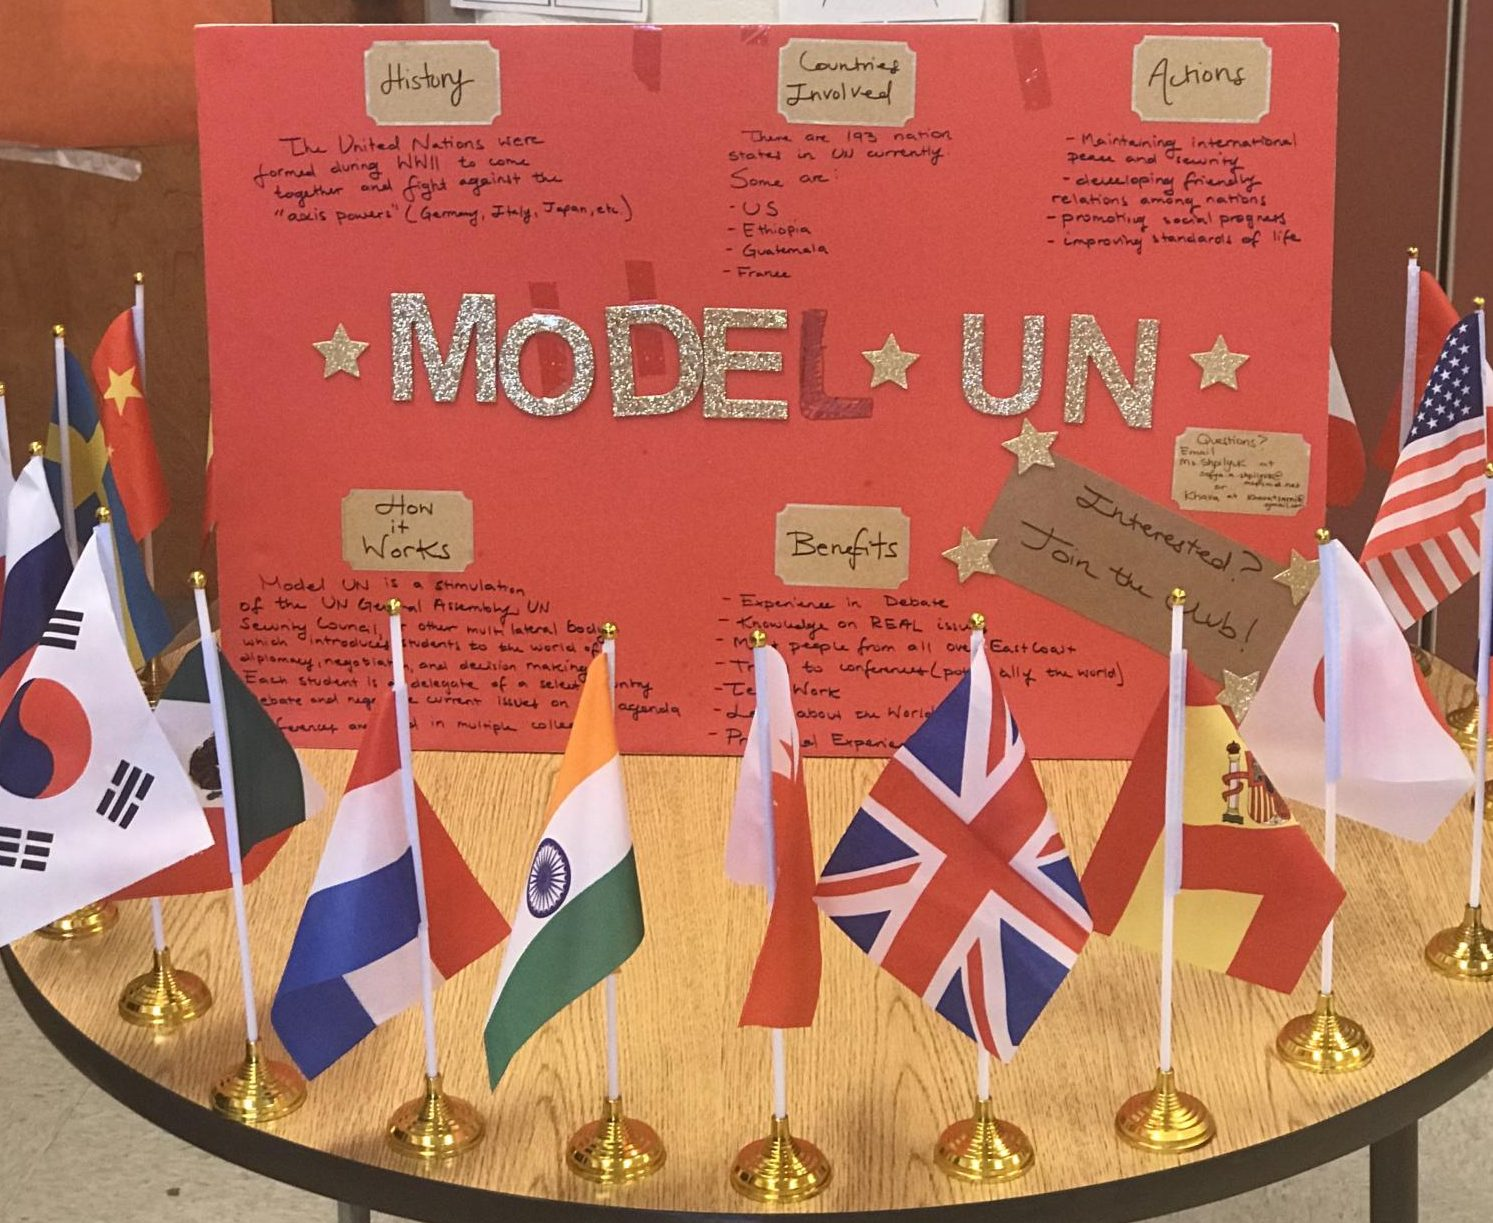 Model UN is a new club at Watkins Mill this year, sponsored by English teacher Sonya Shpilyuk